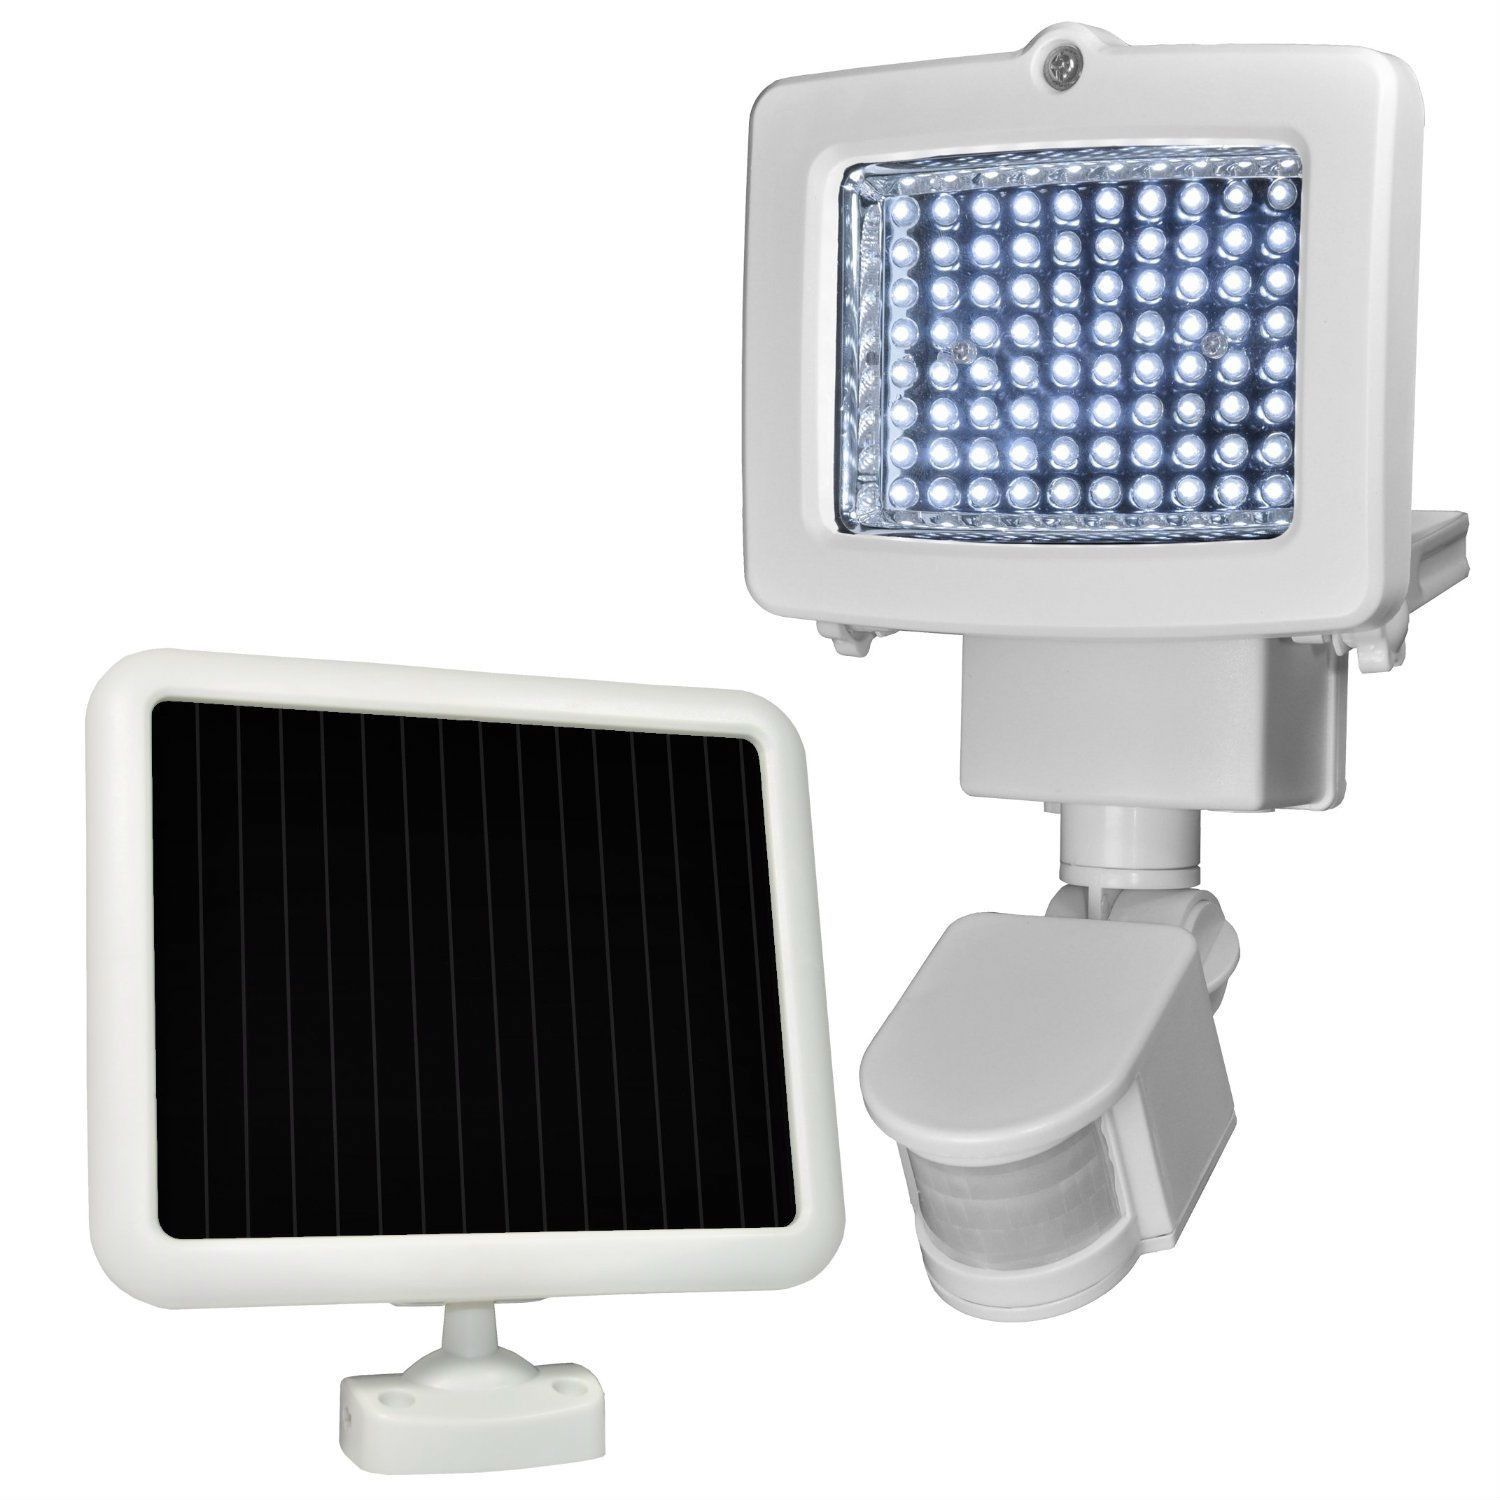 Weatherproof 80 Led Solar Powered Motion Sensor Light Solar Motion Lights Motion Lights Motion Sensor Lights